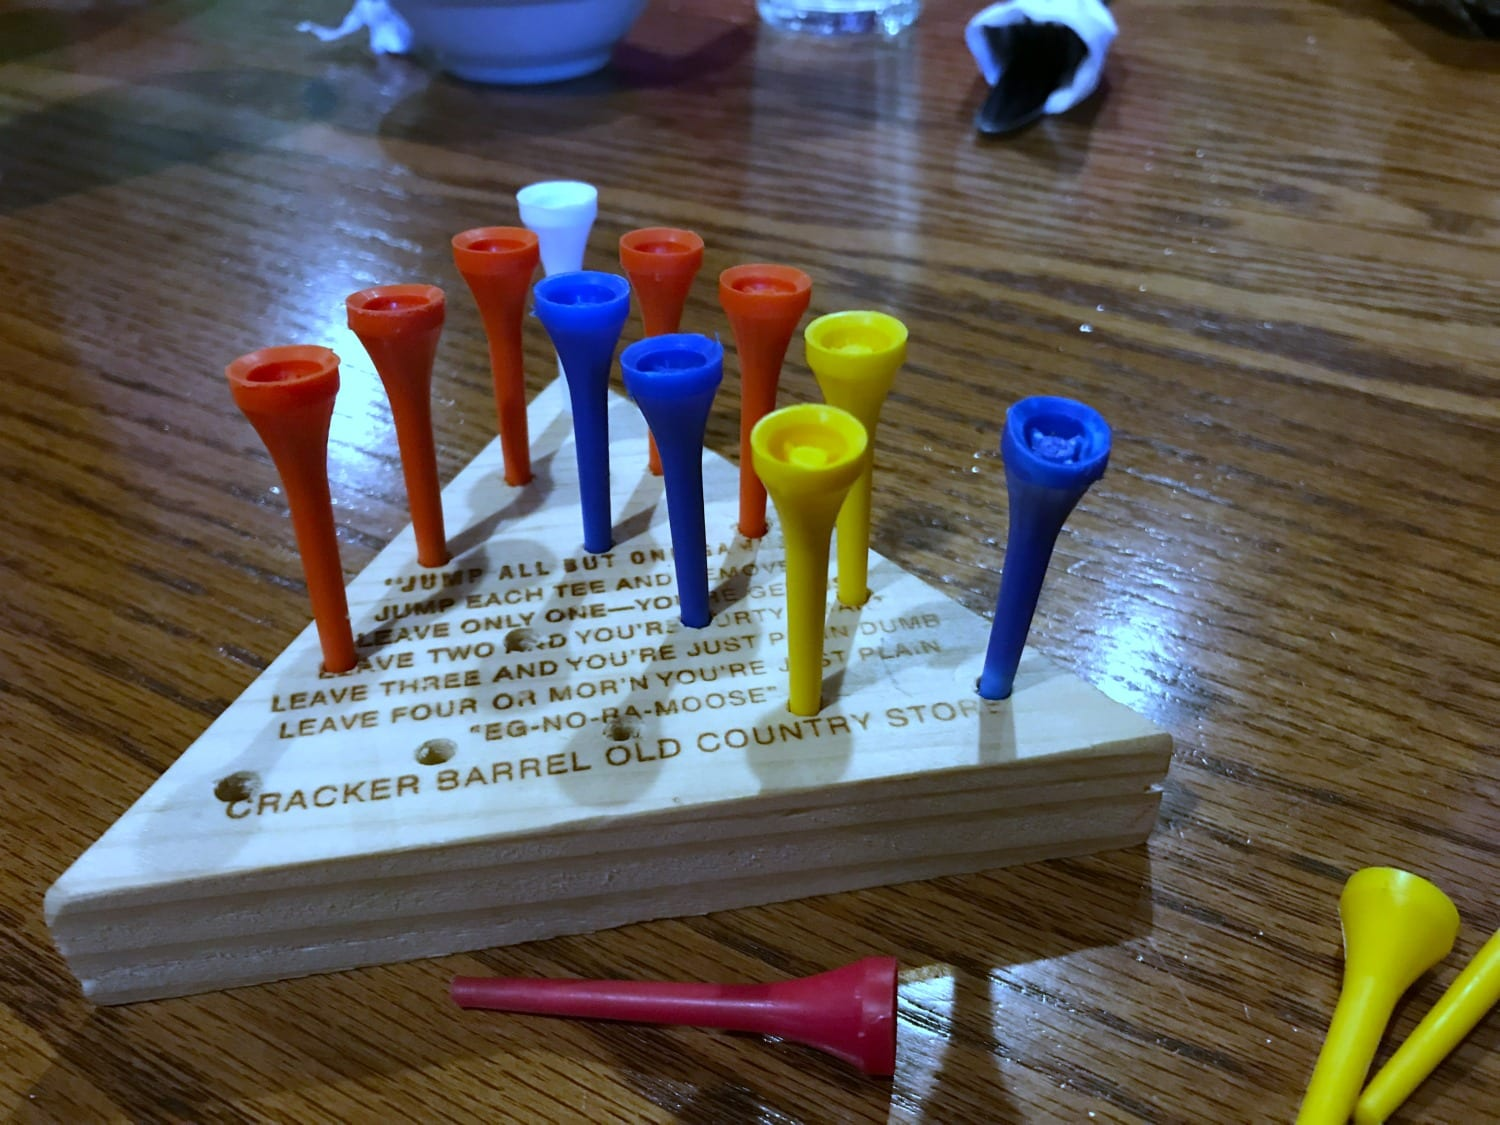 Games at Cracker Barrel while you wait for the food!